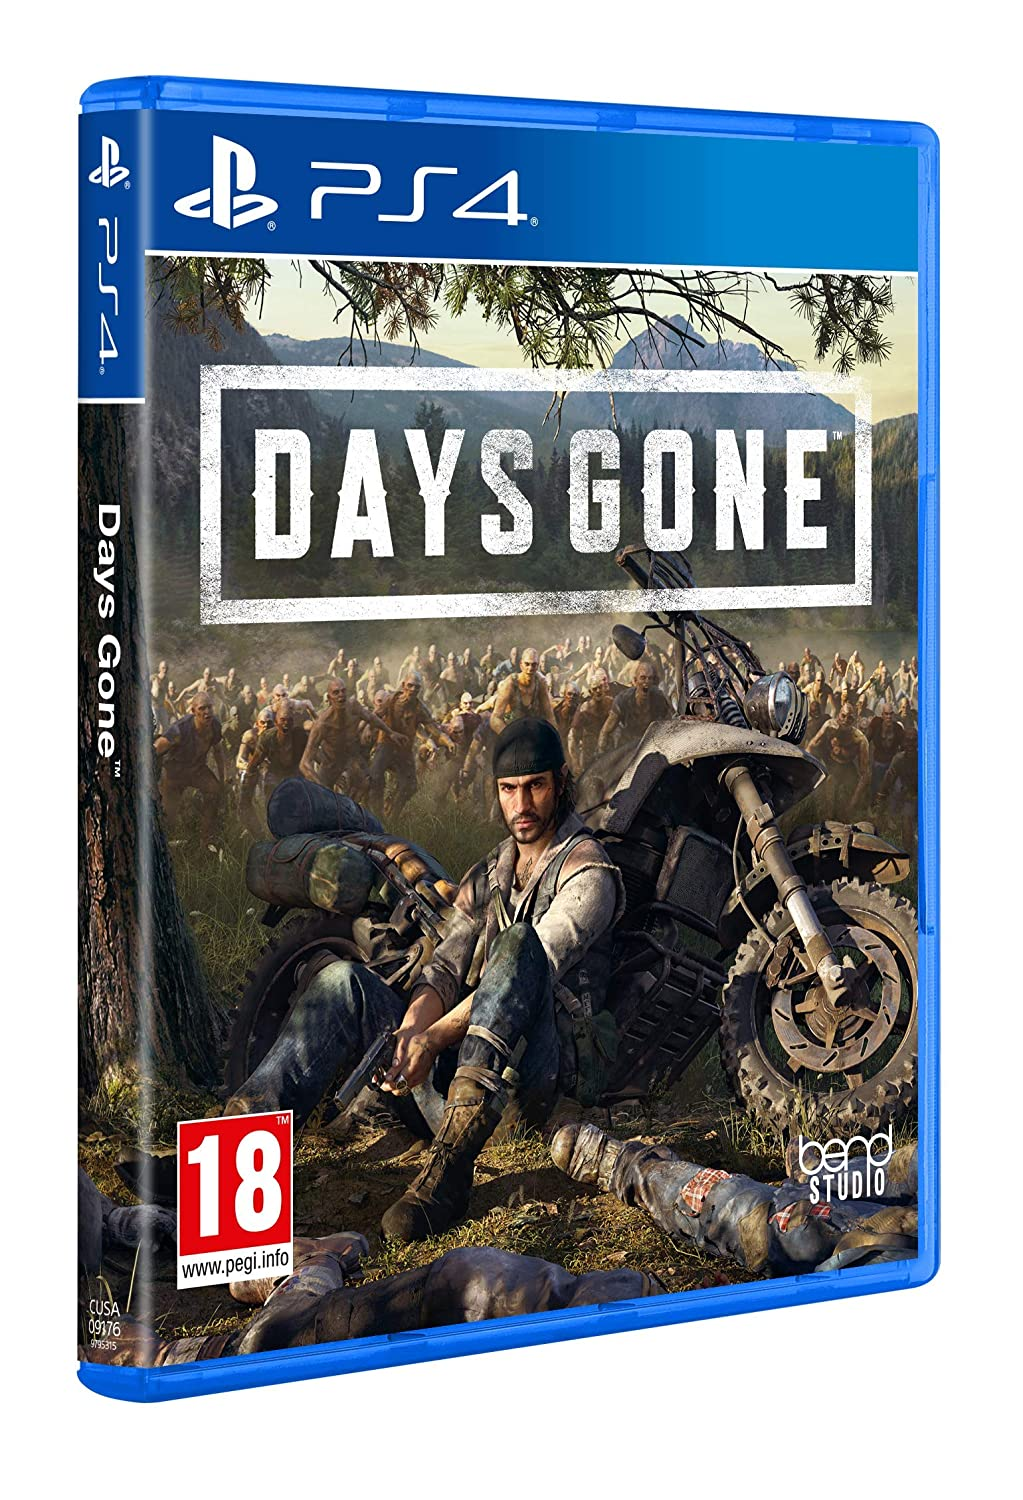 Days Gone PS4 4 Playstation Jacksonville Mall Ranking integrated 1st place